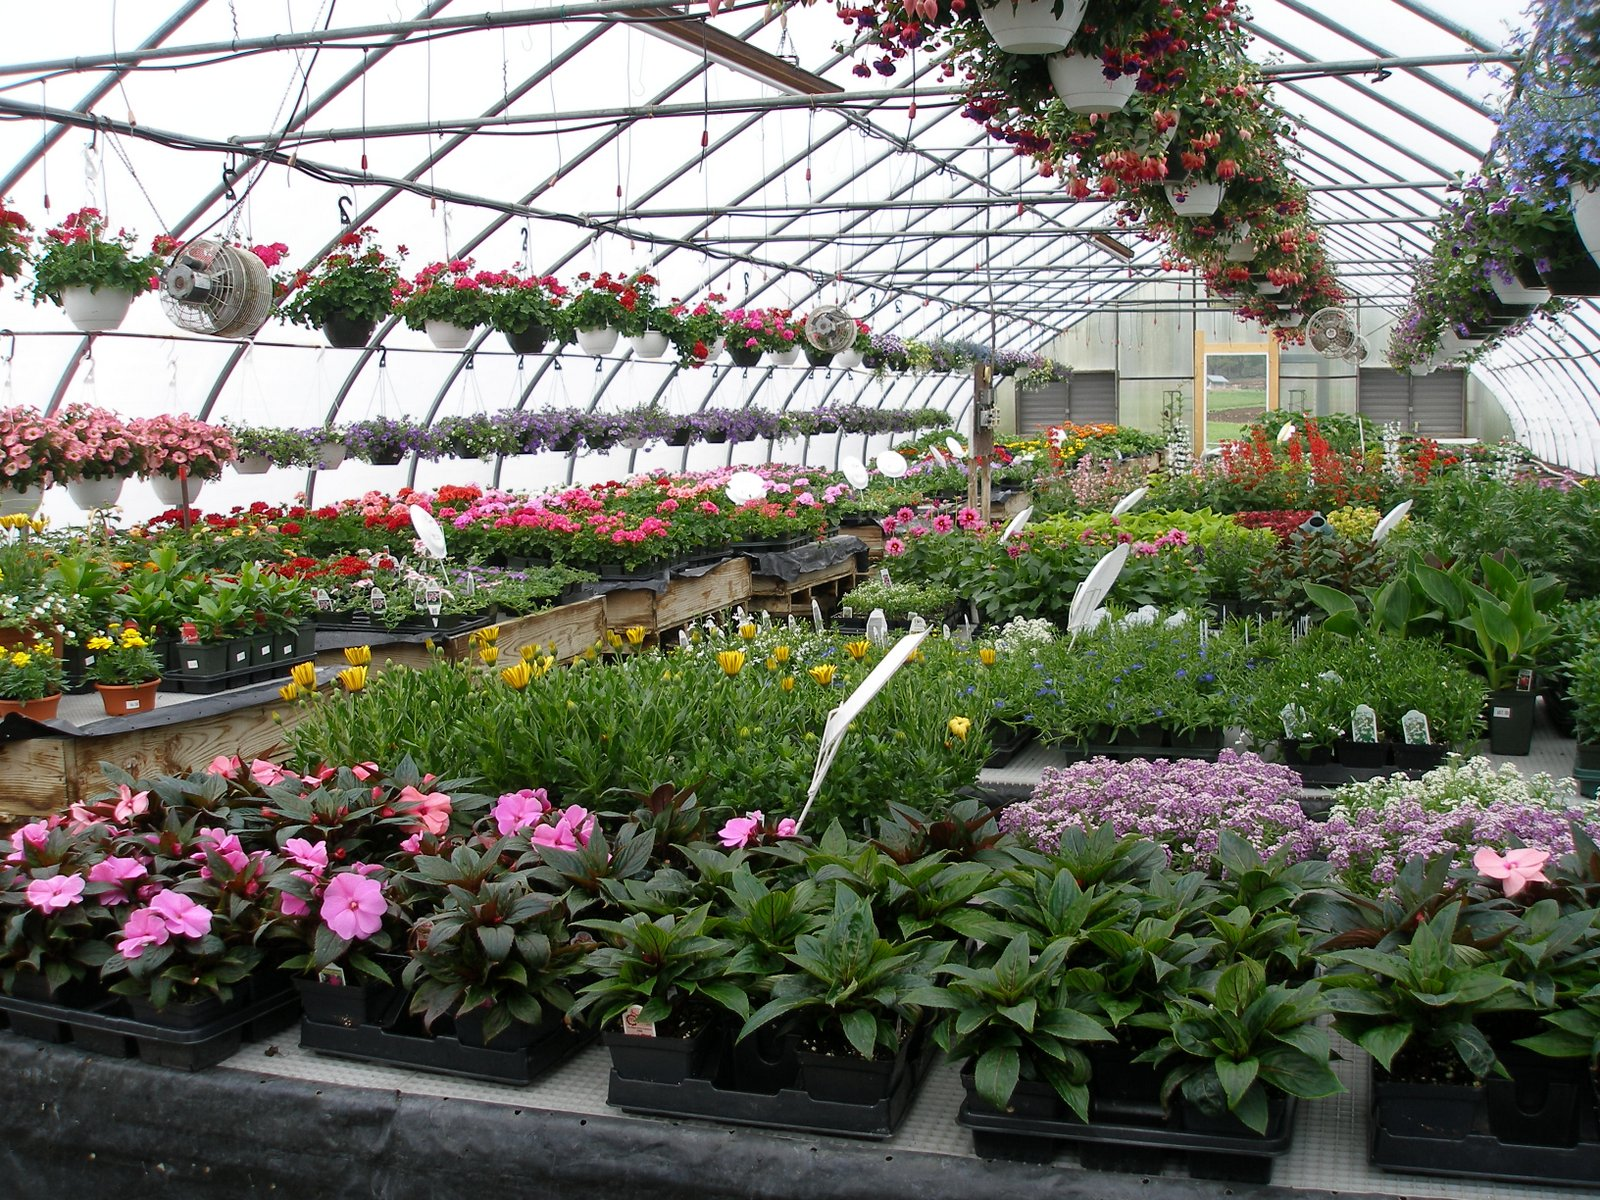 Long Hours of work in March and April means a full greenhouse in May